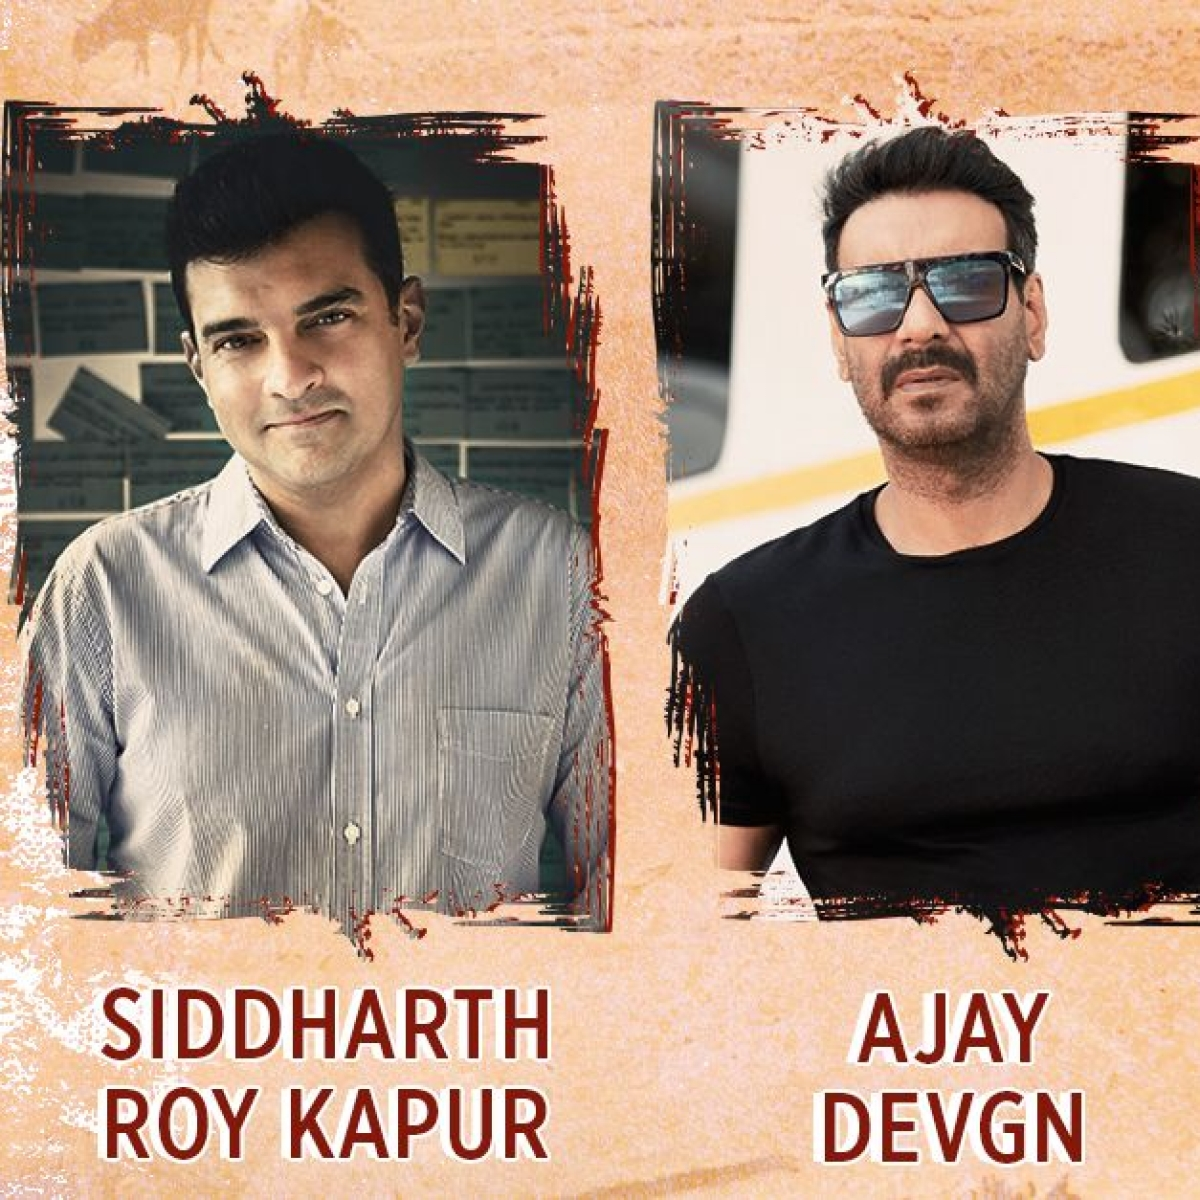 Ajay Devgn collaborates with Siddharth Roy Kapur for a comedy-drama titled 'GOBAR!'